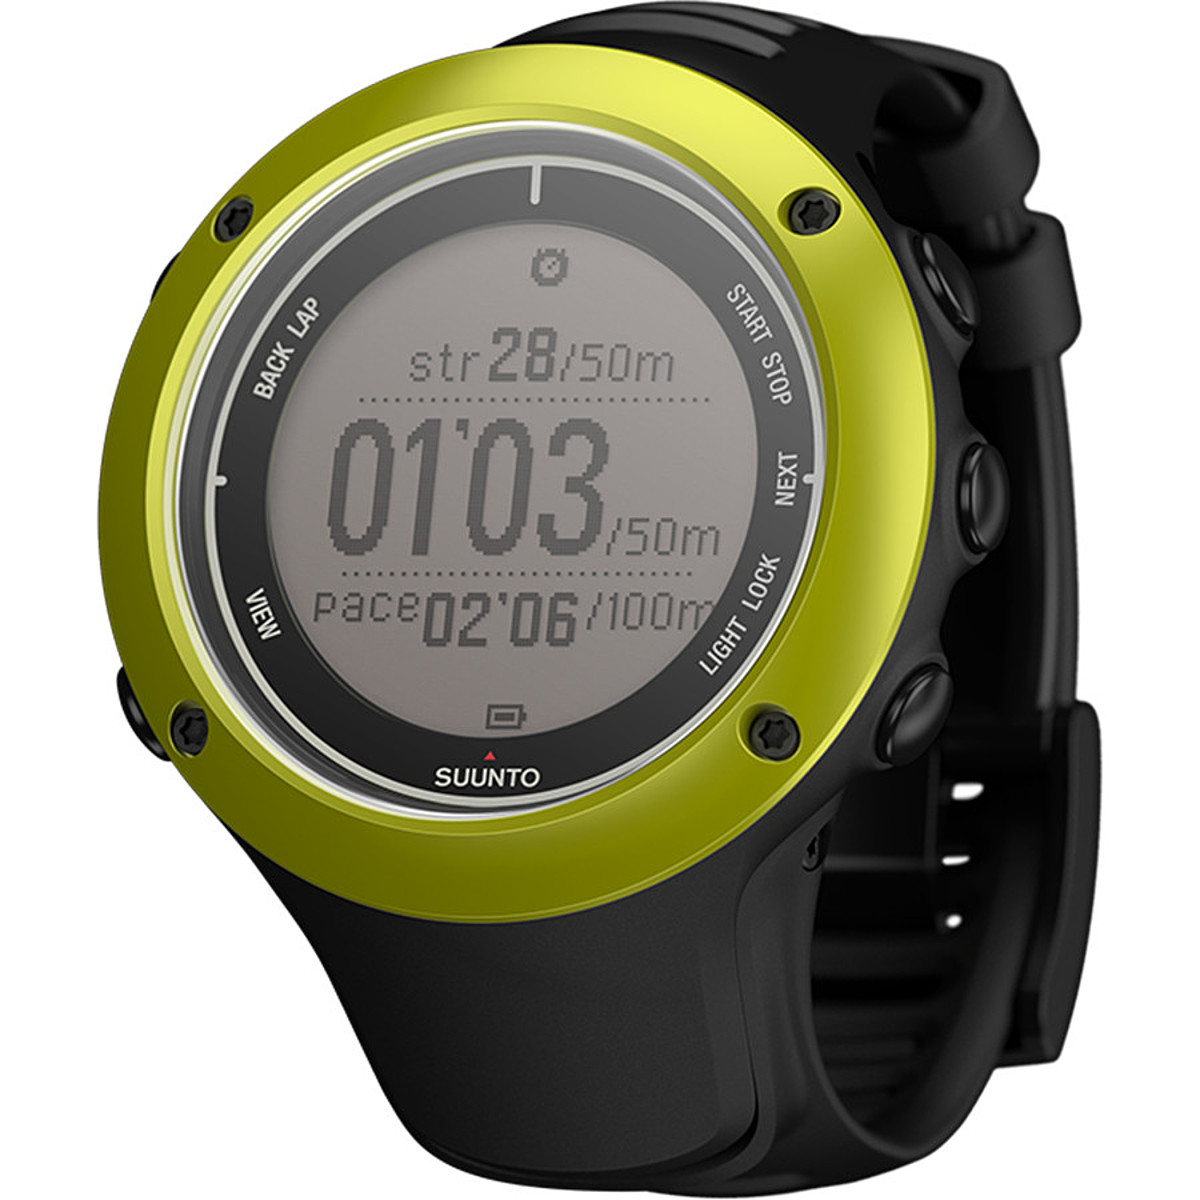 photo of a Suunto hiking/camping product